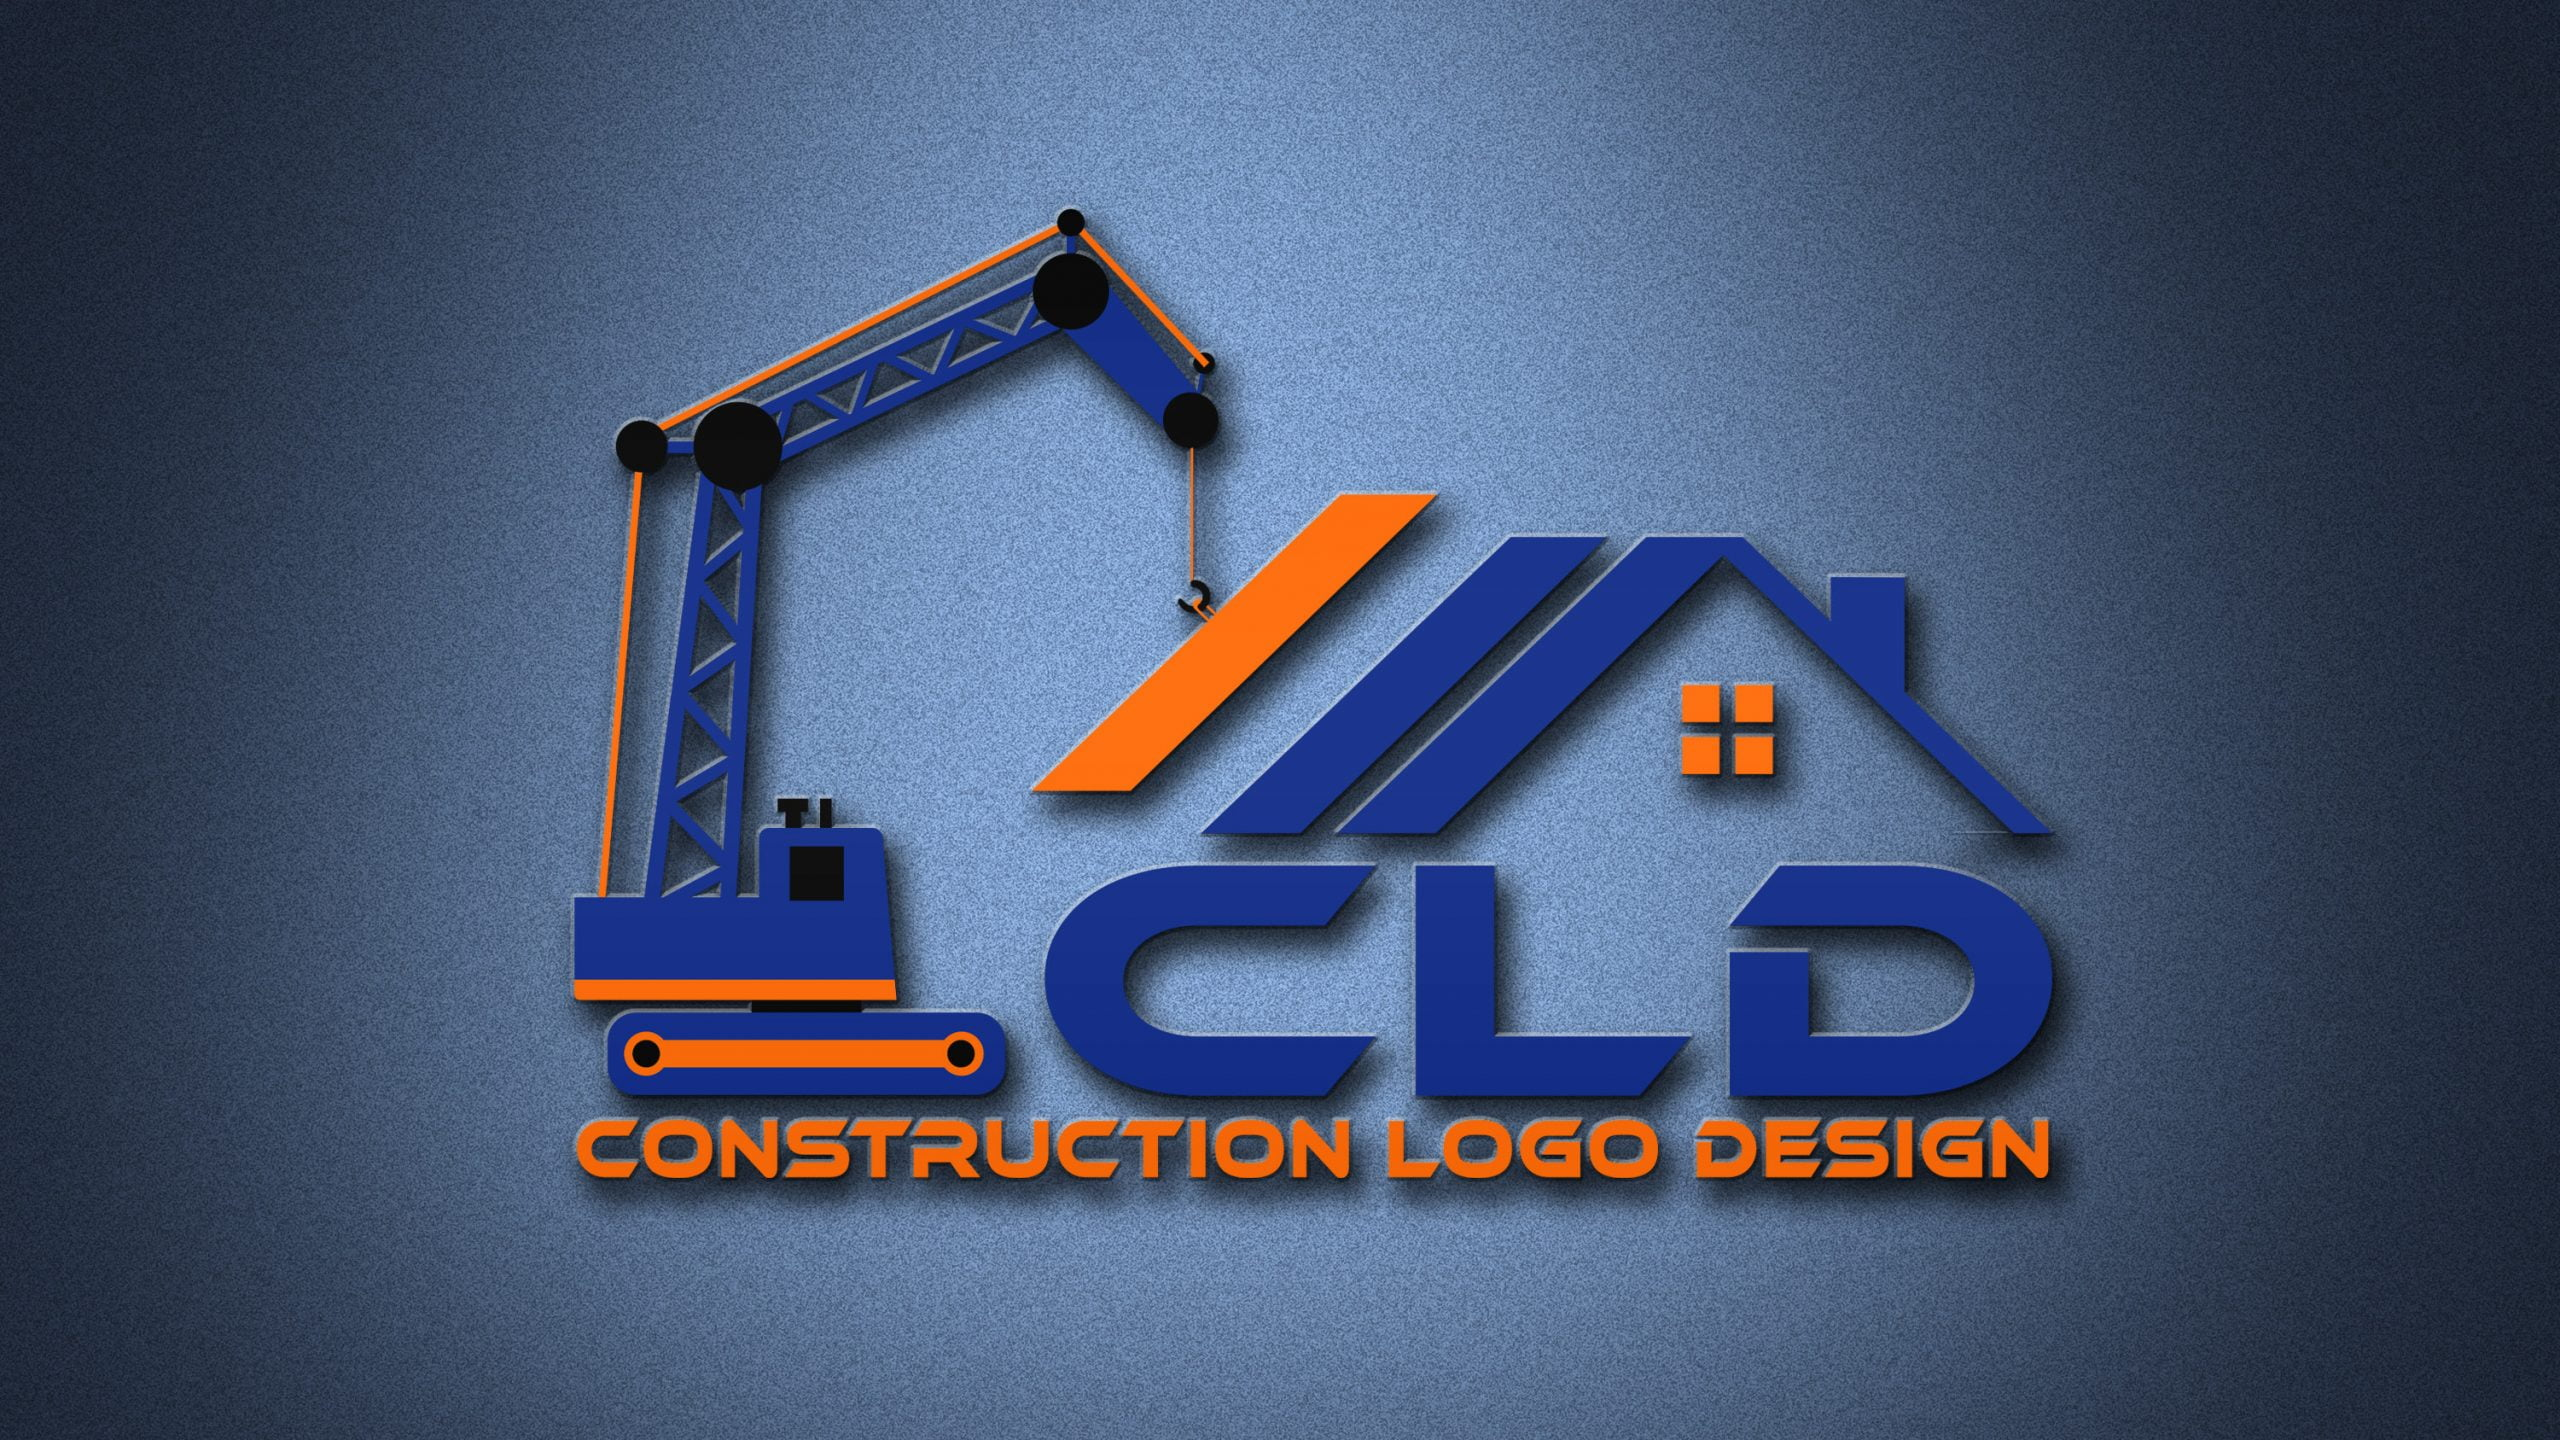 Construction Logo Design on 3d wall